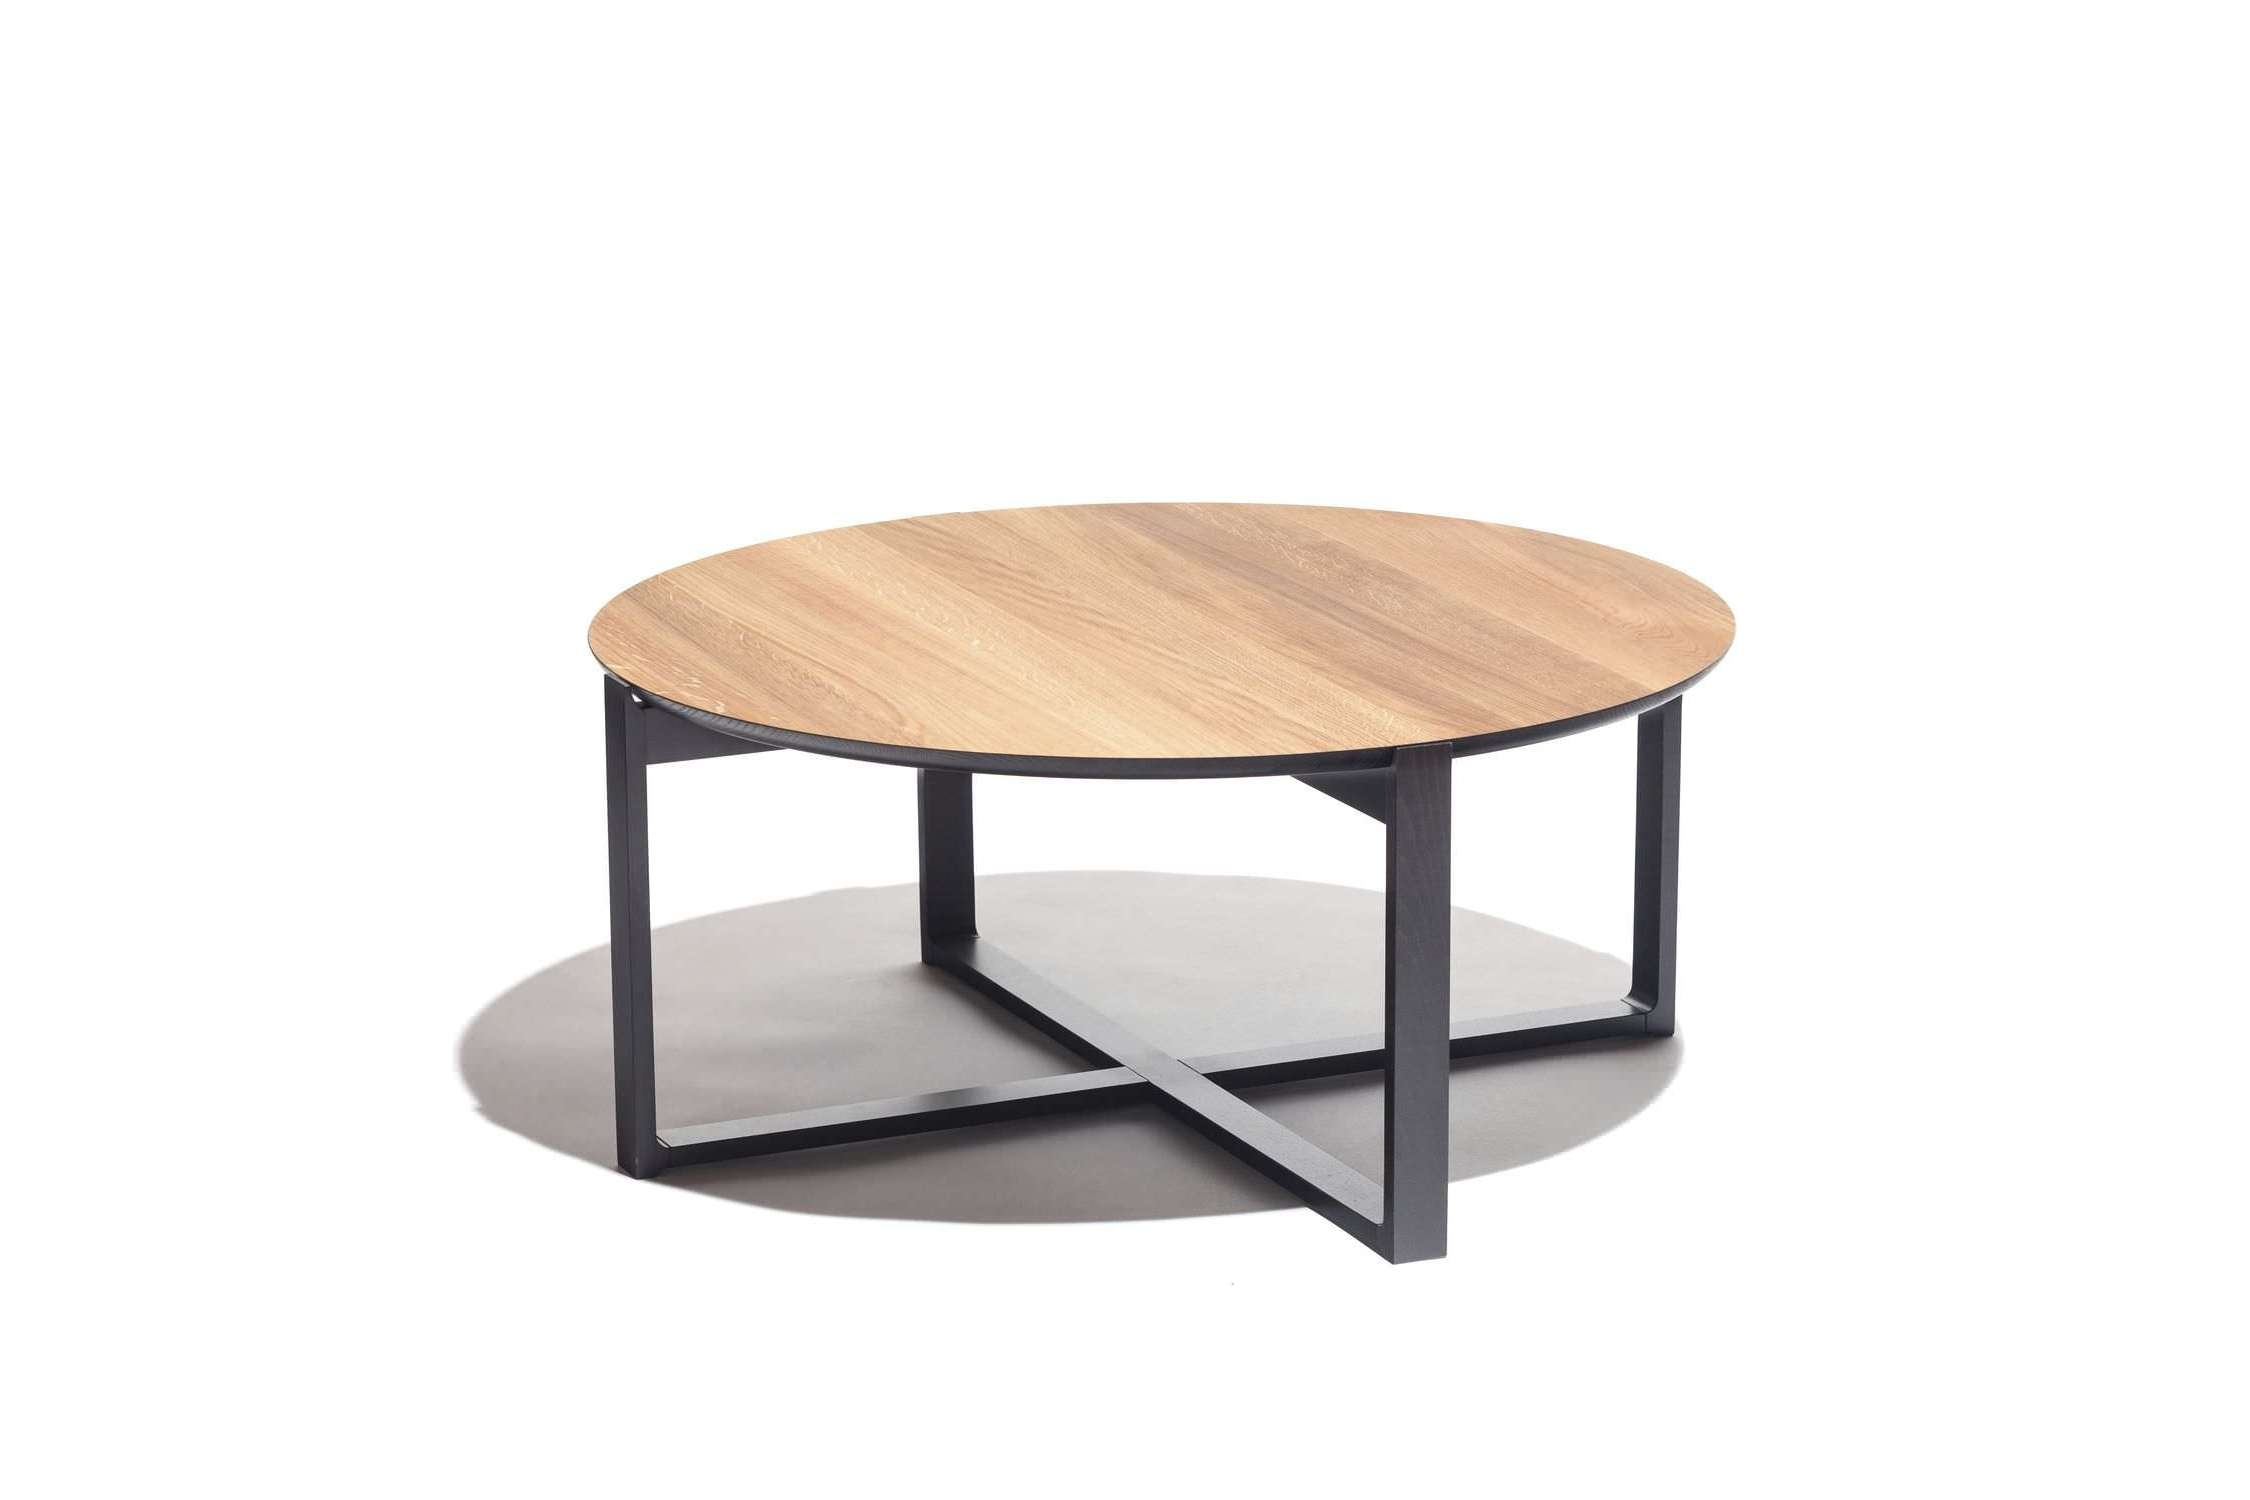 Fashionable Round Beech Coffee Tables Throughout Contemporary Coffee Table / Oak / Beech / Round – Delta 723kai (View 2 of 20)